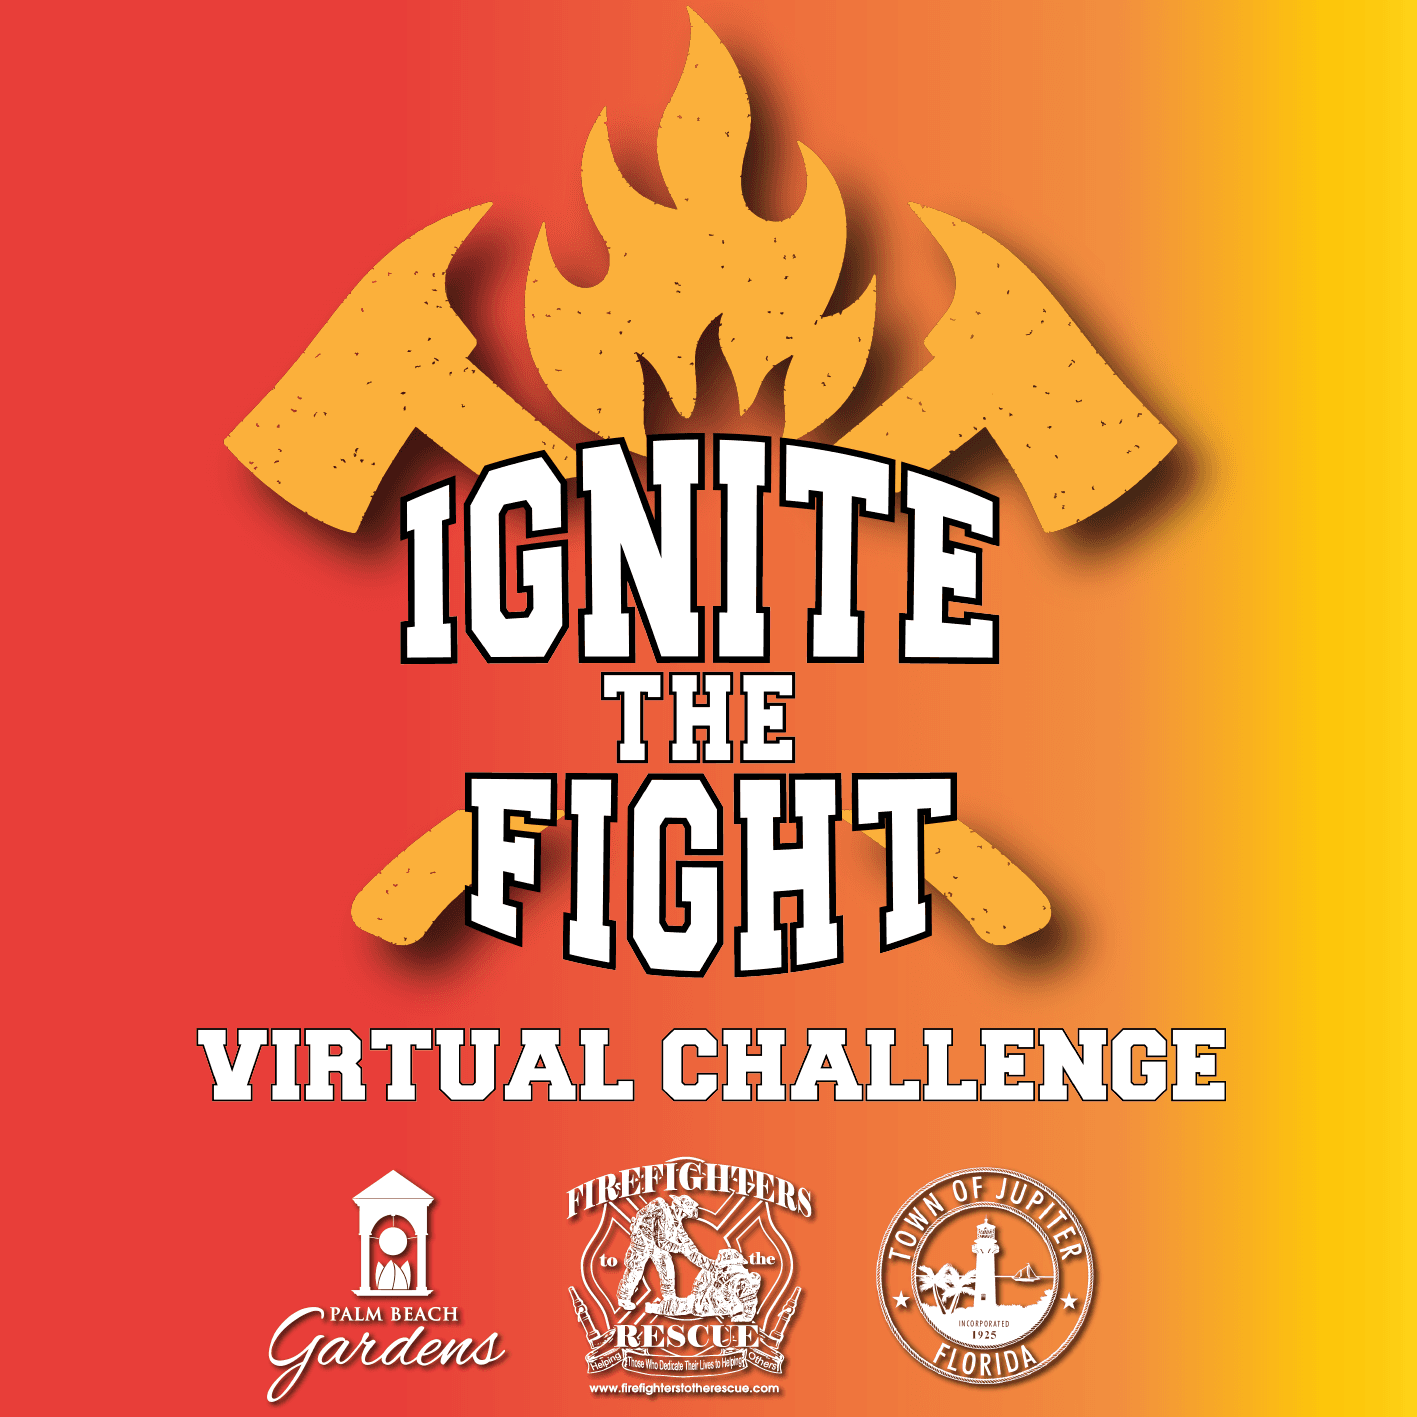 Ignite the Fight 5K event.